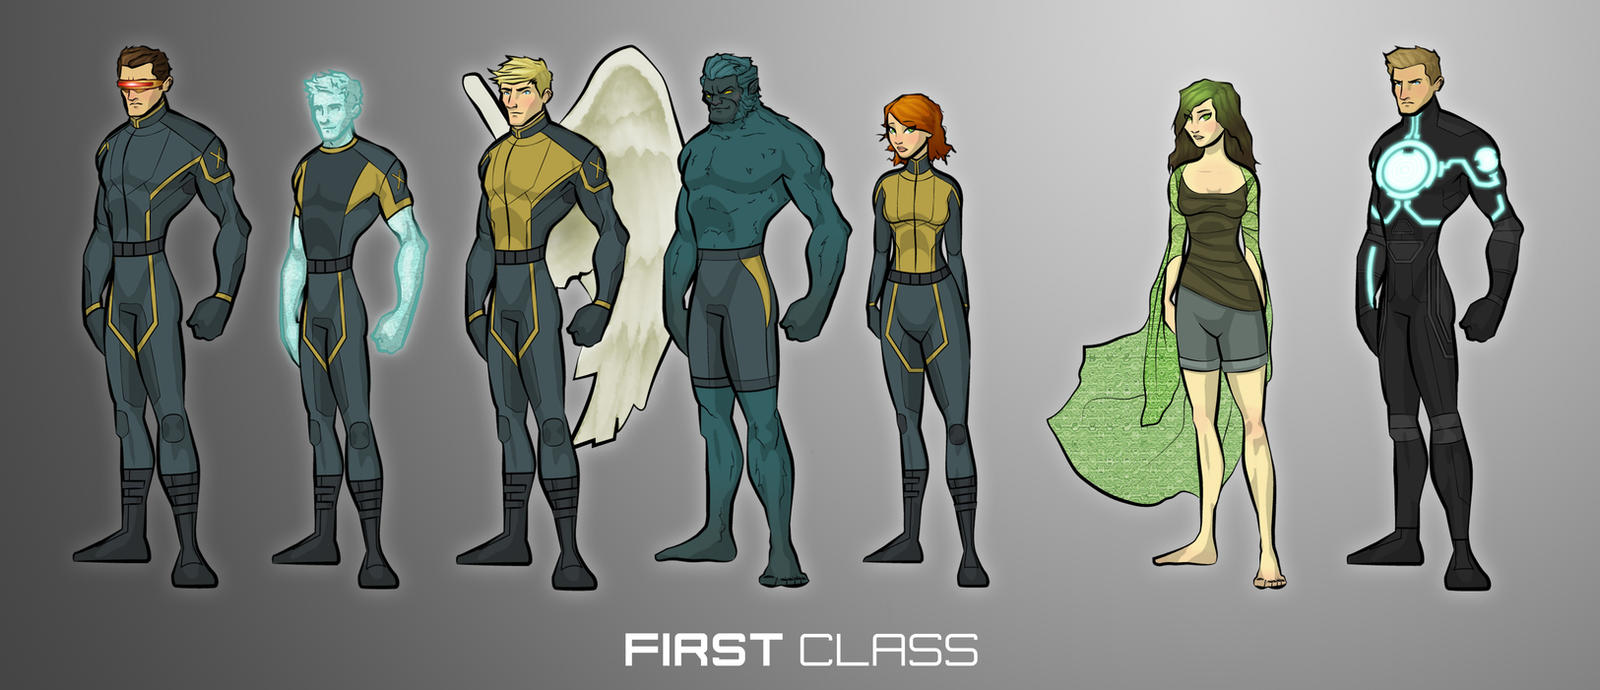 X Men Redesigns For The Mcu A118746 moreover File Bru tes long hair brown eyes simple background anime girls sword art online yuuki asuna 1600x12   miscellaneoushi   99 together with Watch in addition Teenage Mutant Ninja Turtles 1987 Rant And Review furthermore Mikey Munroe. on teenage love cartoon characters